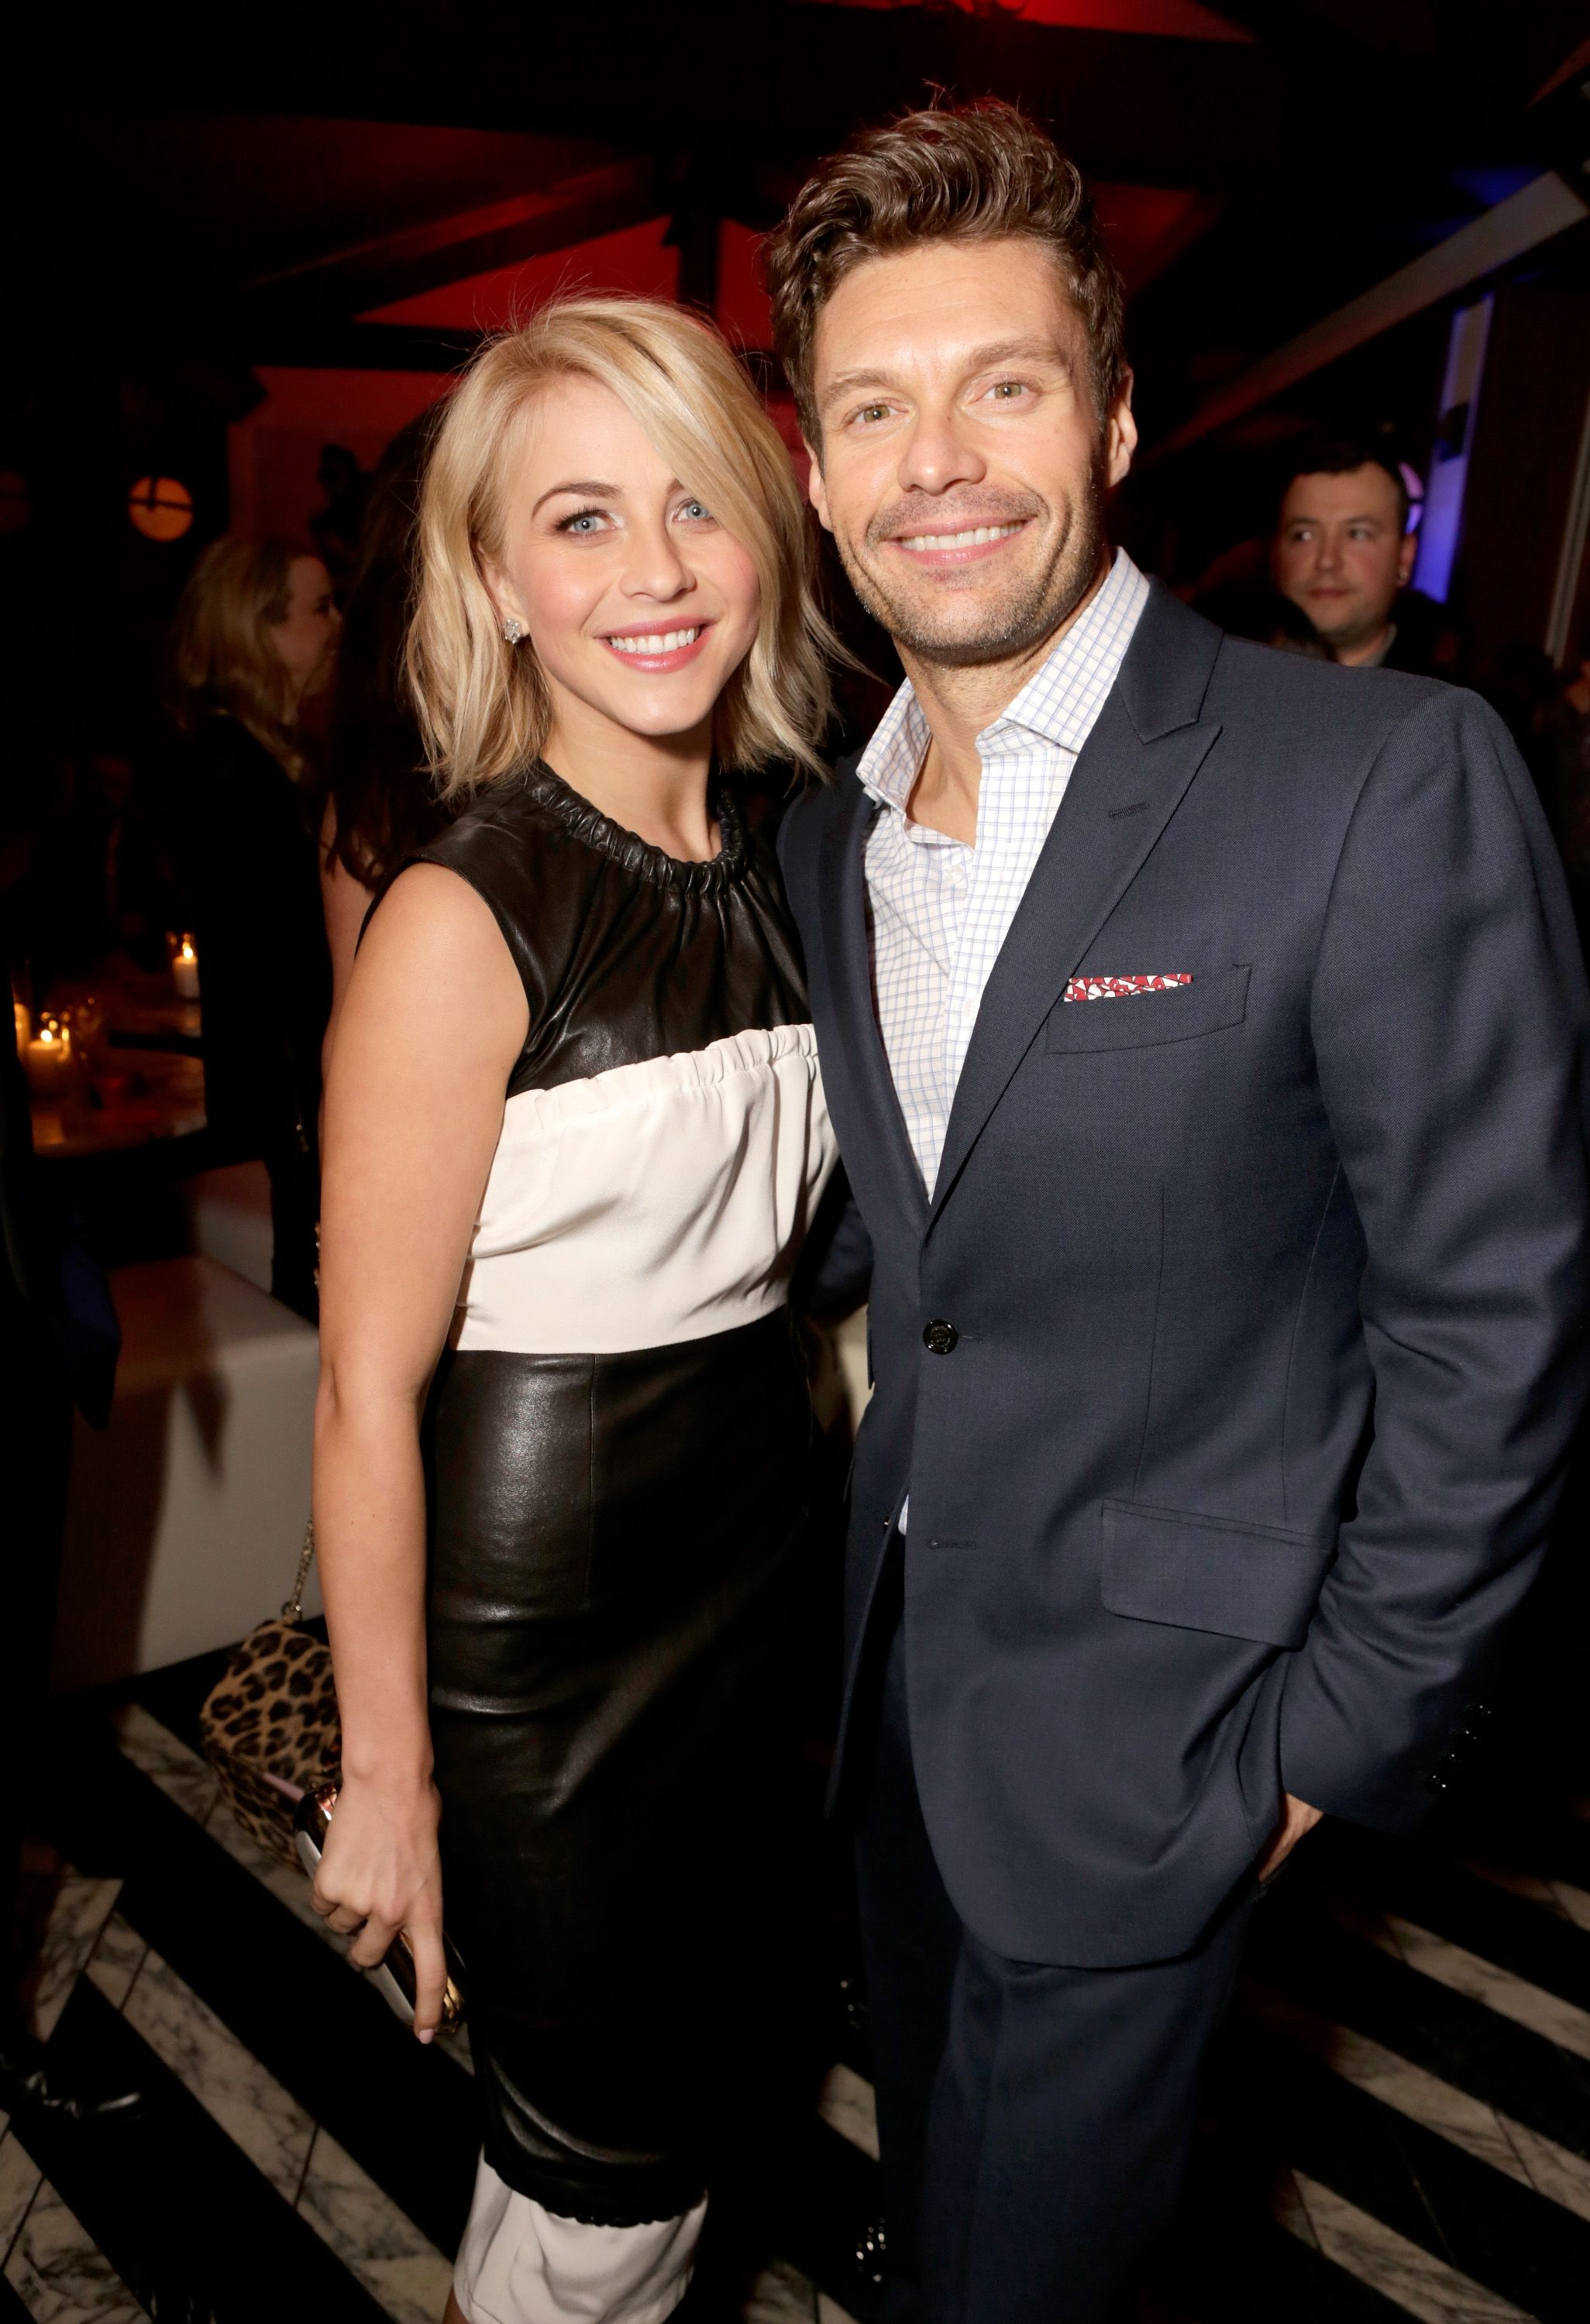 TV personalities Julianne Hough and Ryan Seacrest at the Topshop Topman LA Opening Party at Cecconi's West Hollywood on February 13, 2013 | Photo: Getty Images